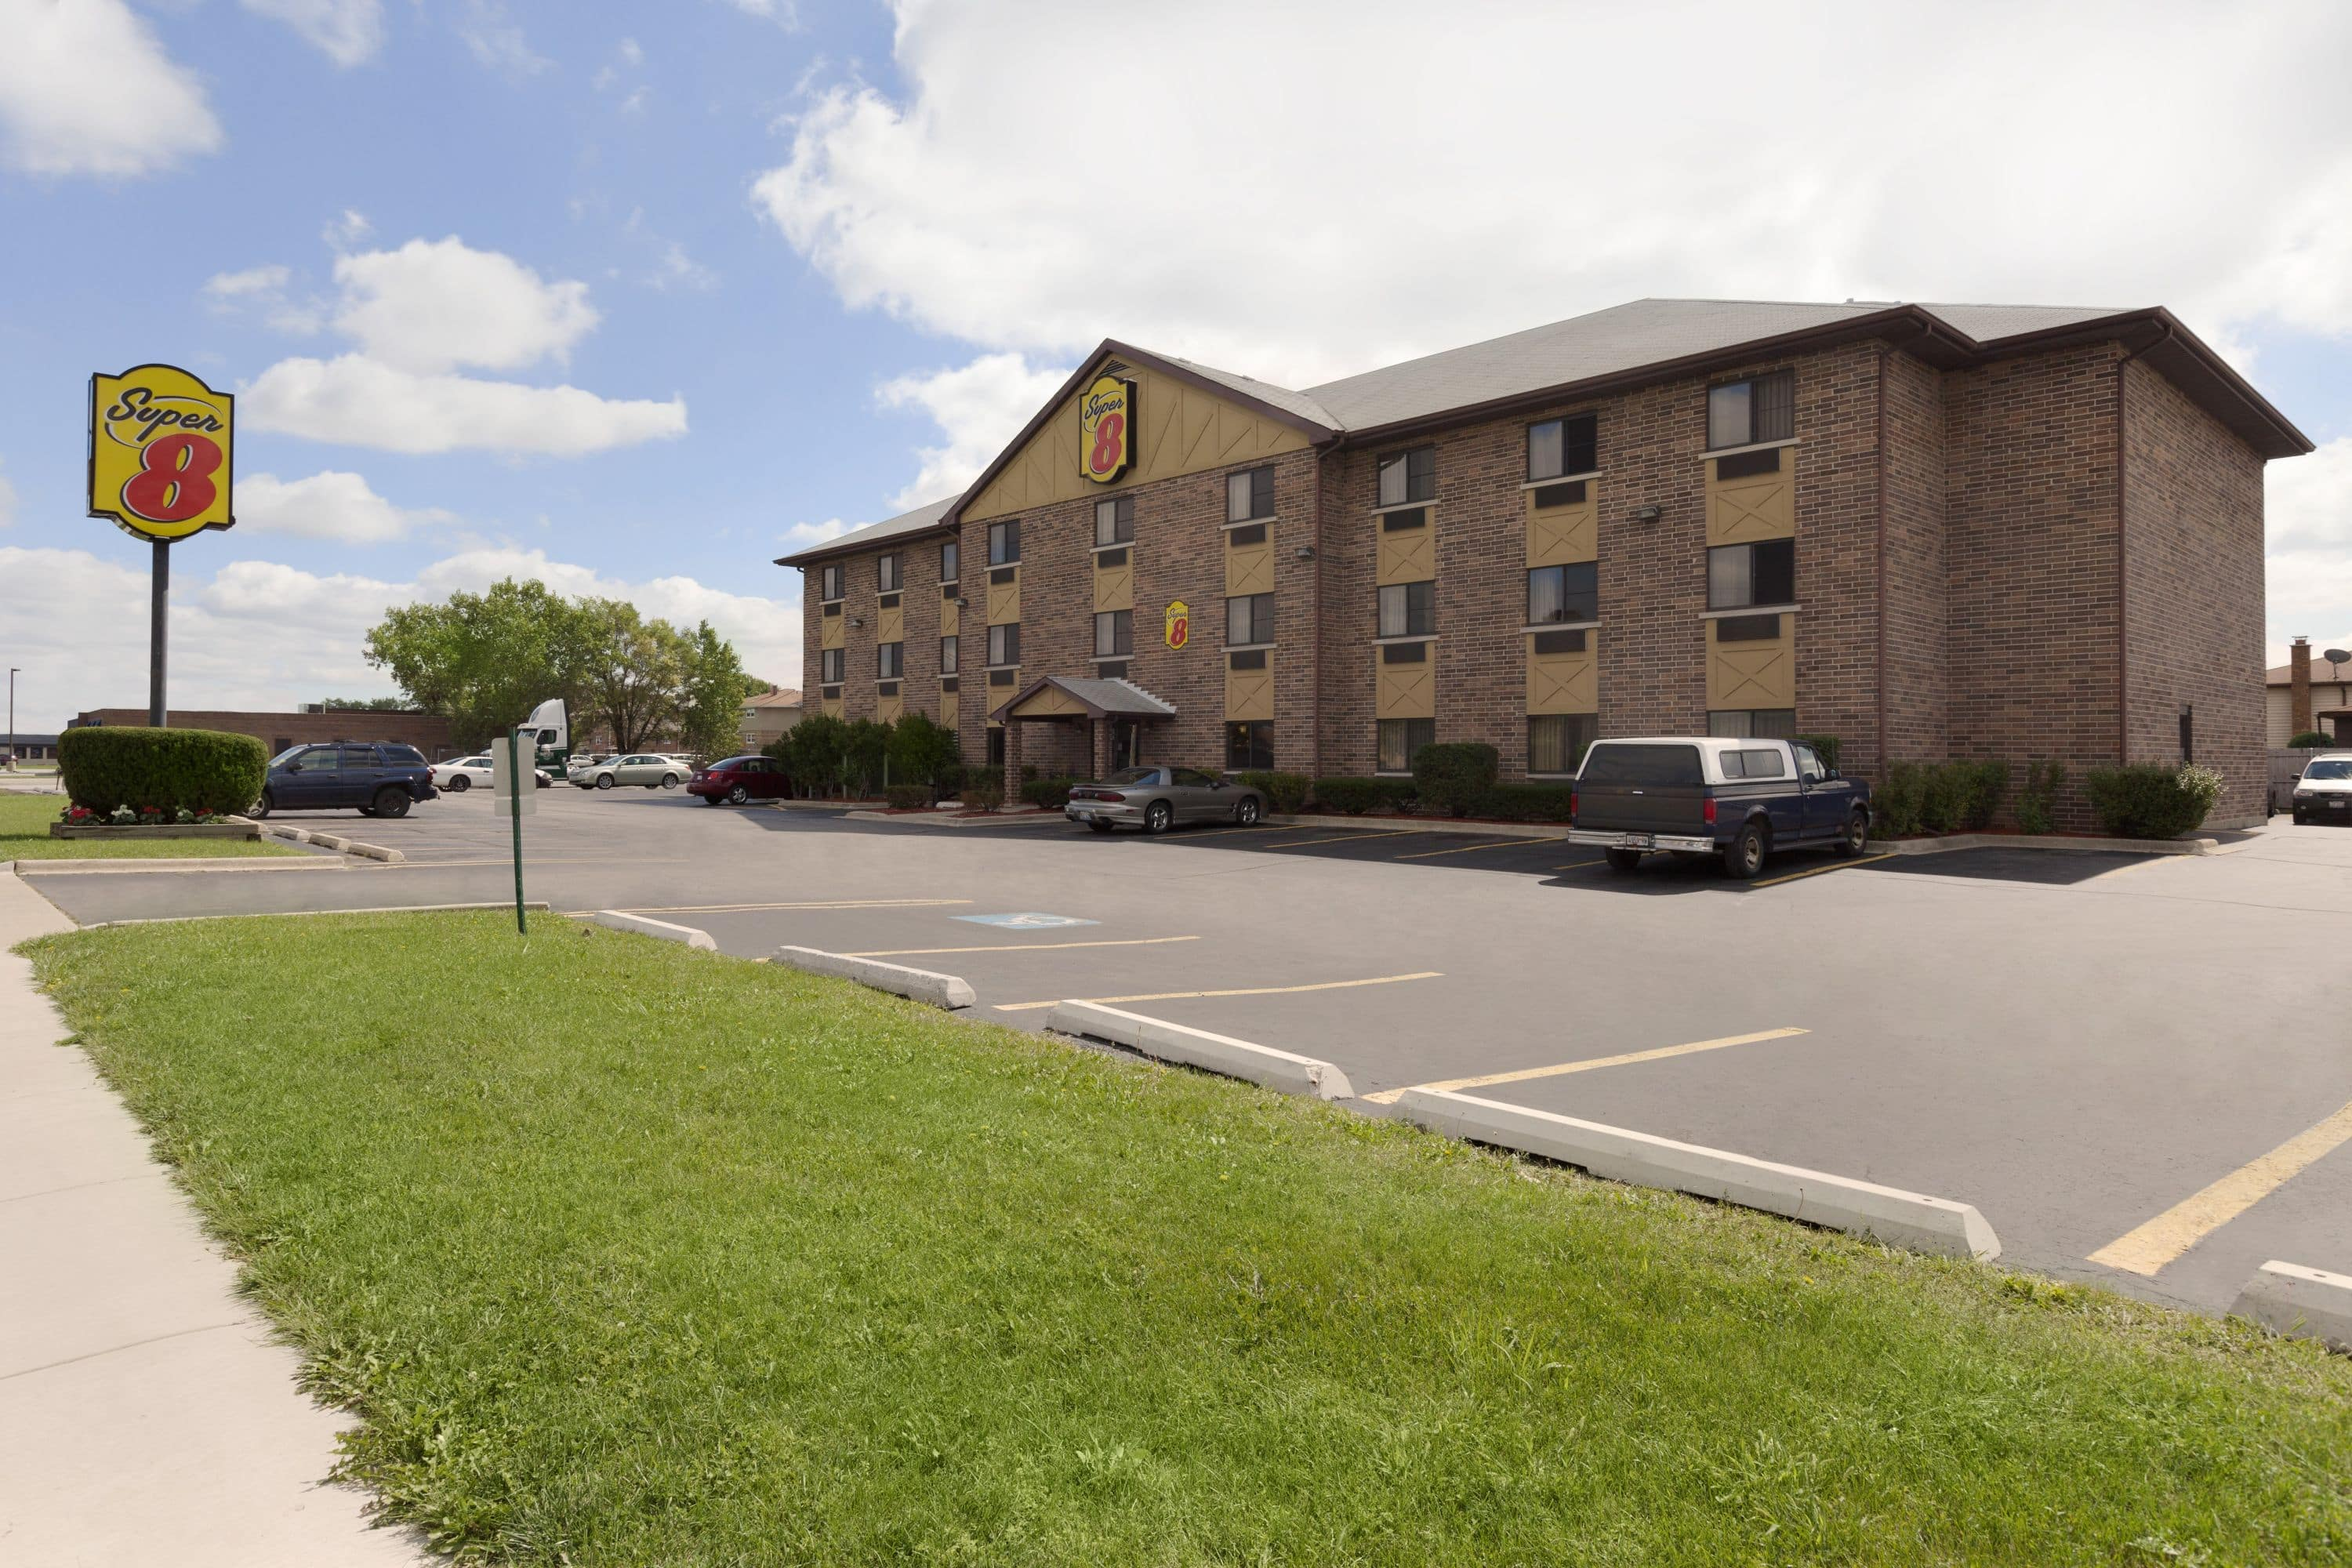 Super 8 by Wyndham BridgeviewChicago Area Bridgeview Hotels IL